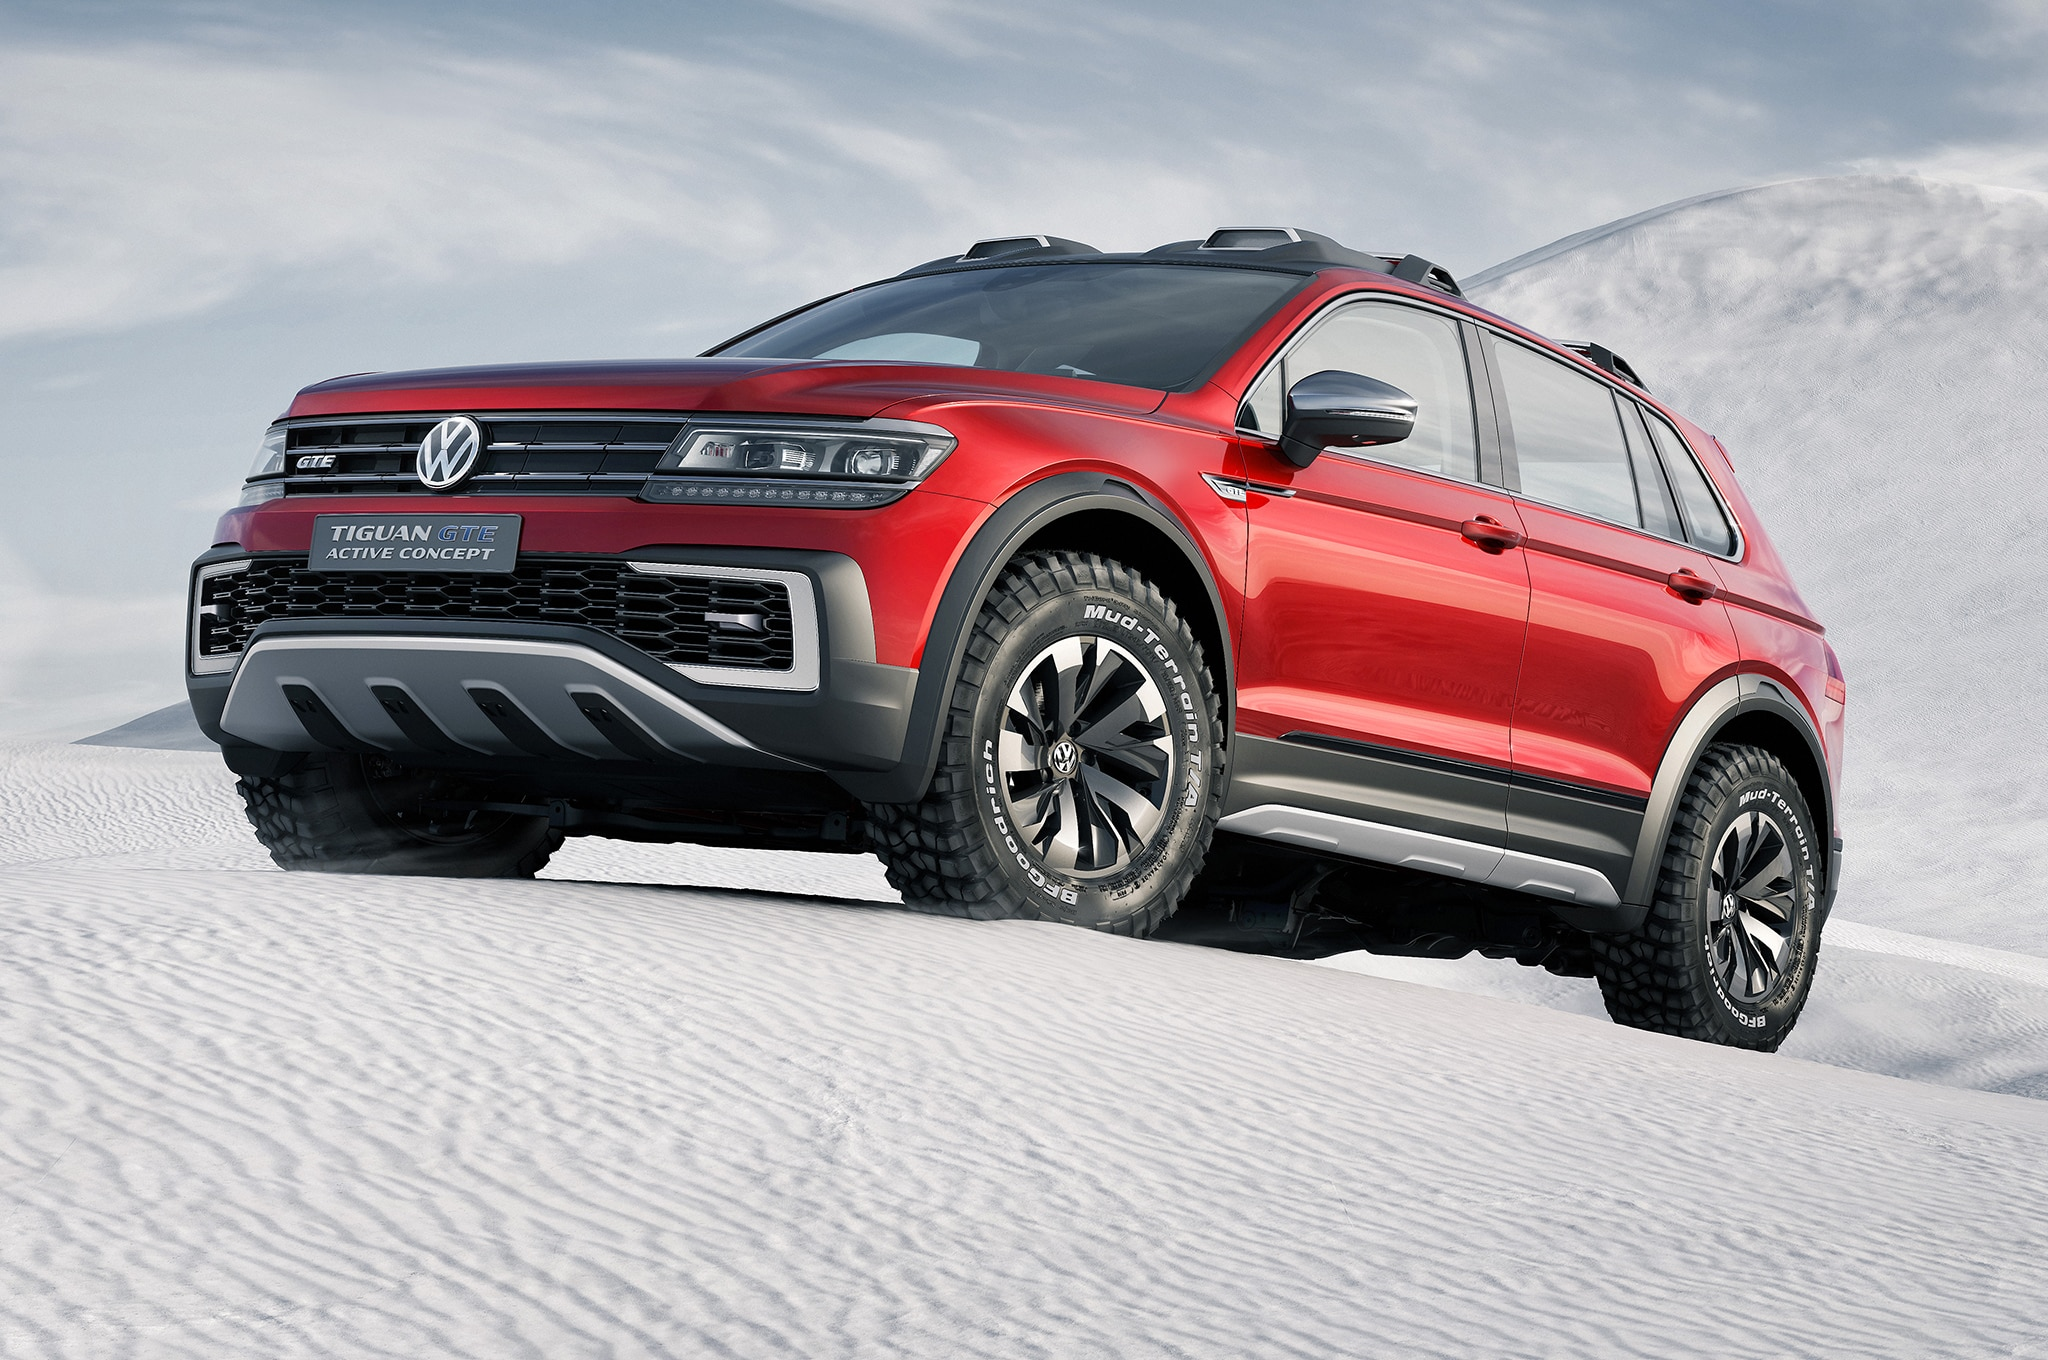 2018 VW Tiguan Hybrid: Rumor Or Reality? >> Volkswagen Tiguan Gte Active Concept Is An Awd Hybrid Crossover